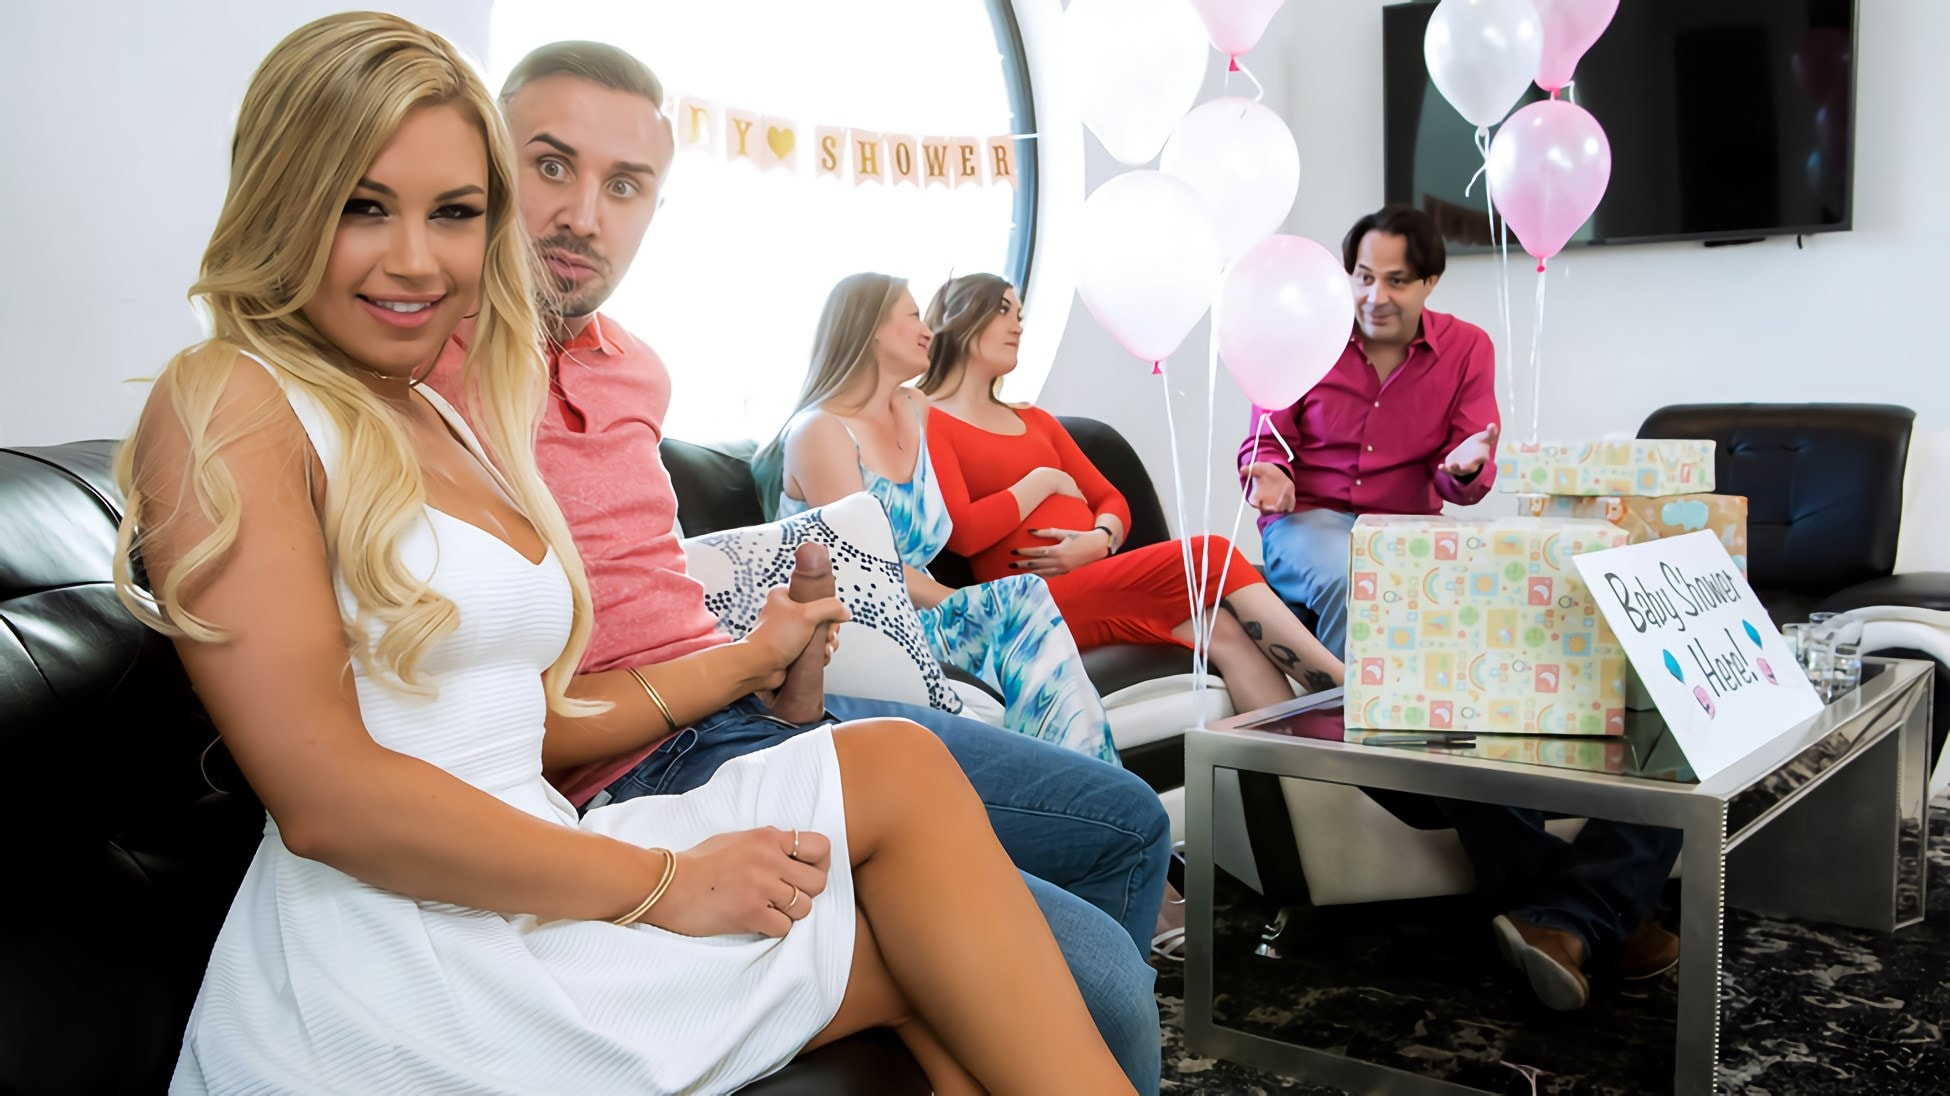 Brazzers 'Busted At The Babyshower' starring Kendall Kayden (photo 6)